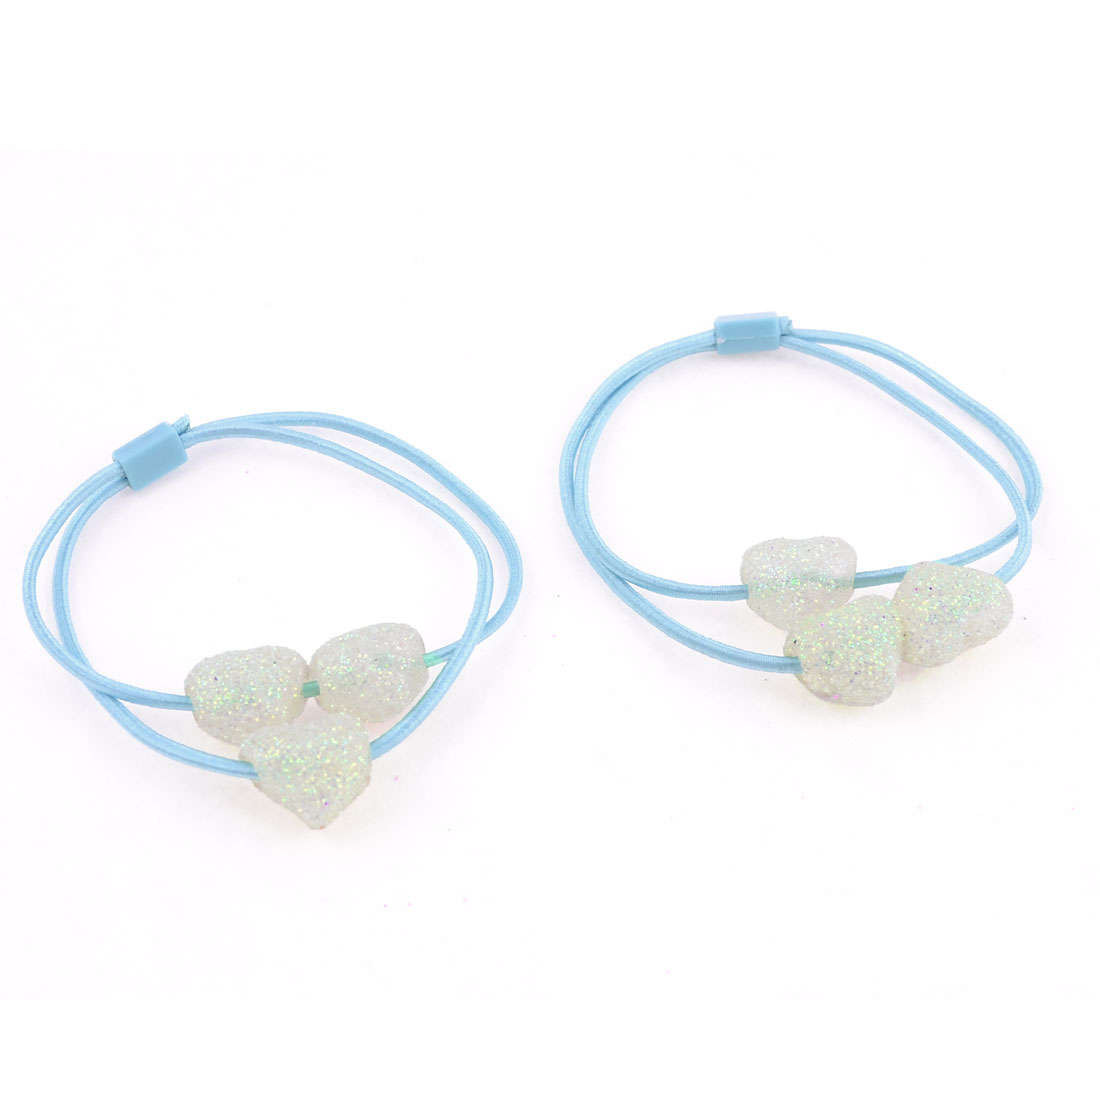 Light Blue Shiny Heart Bead Decor Stretch Hair Tie Ponytail Holder Pair